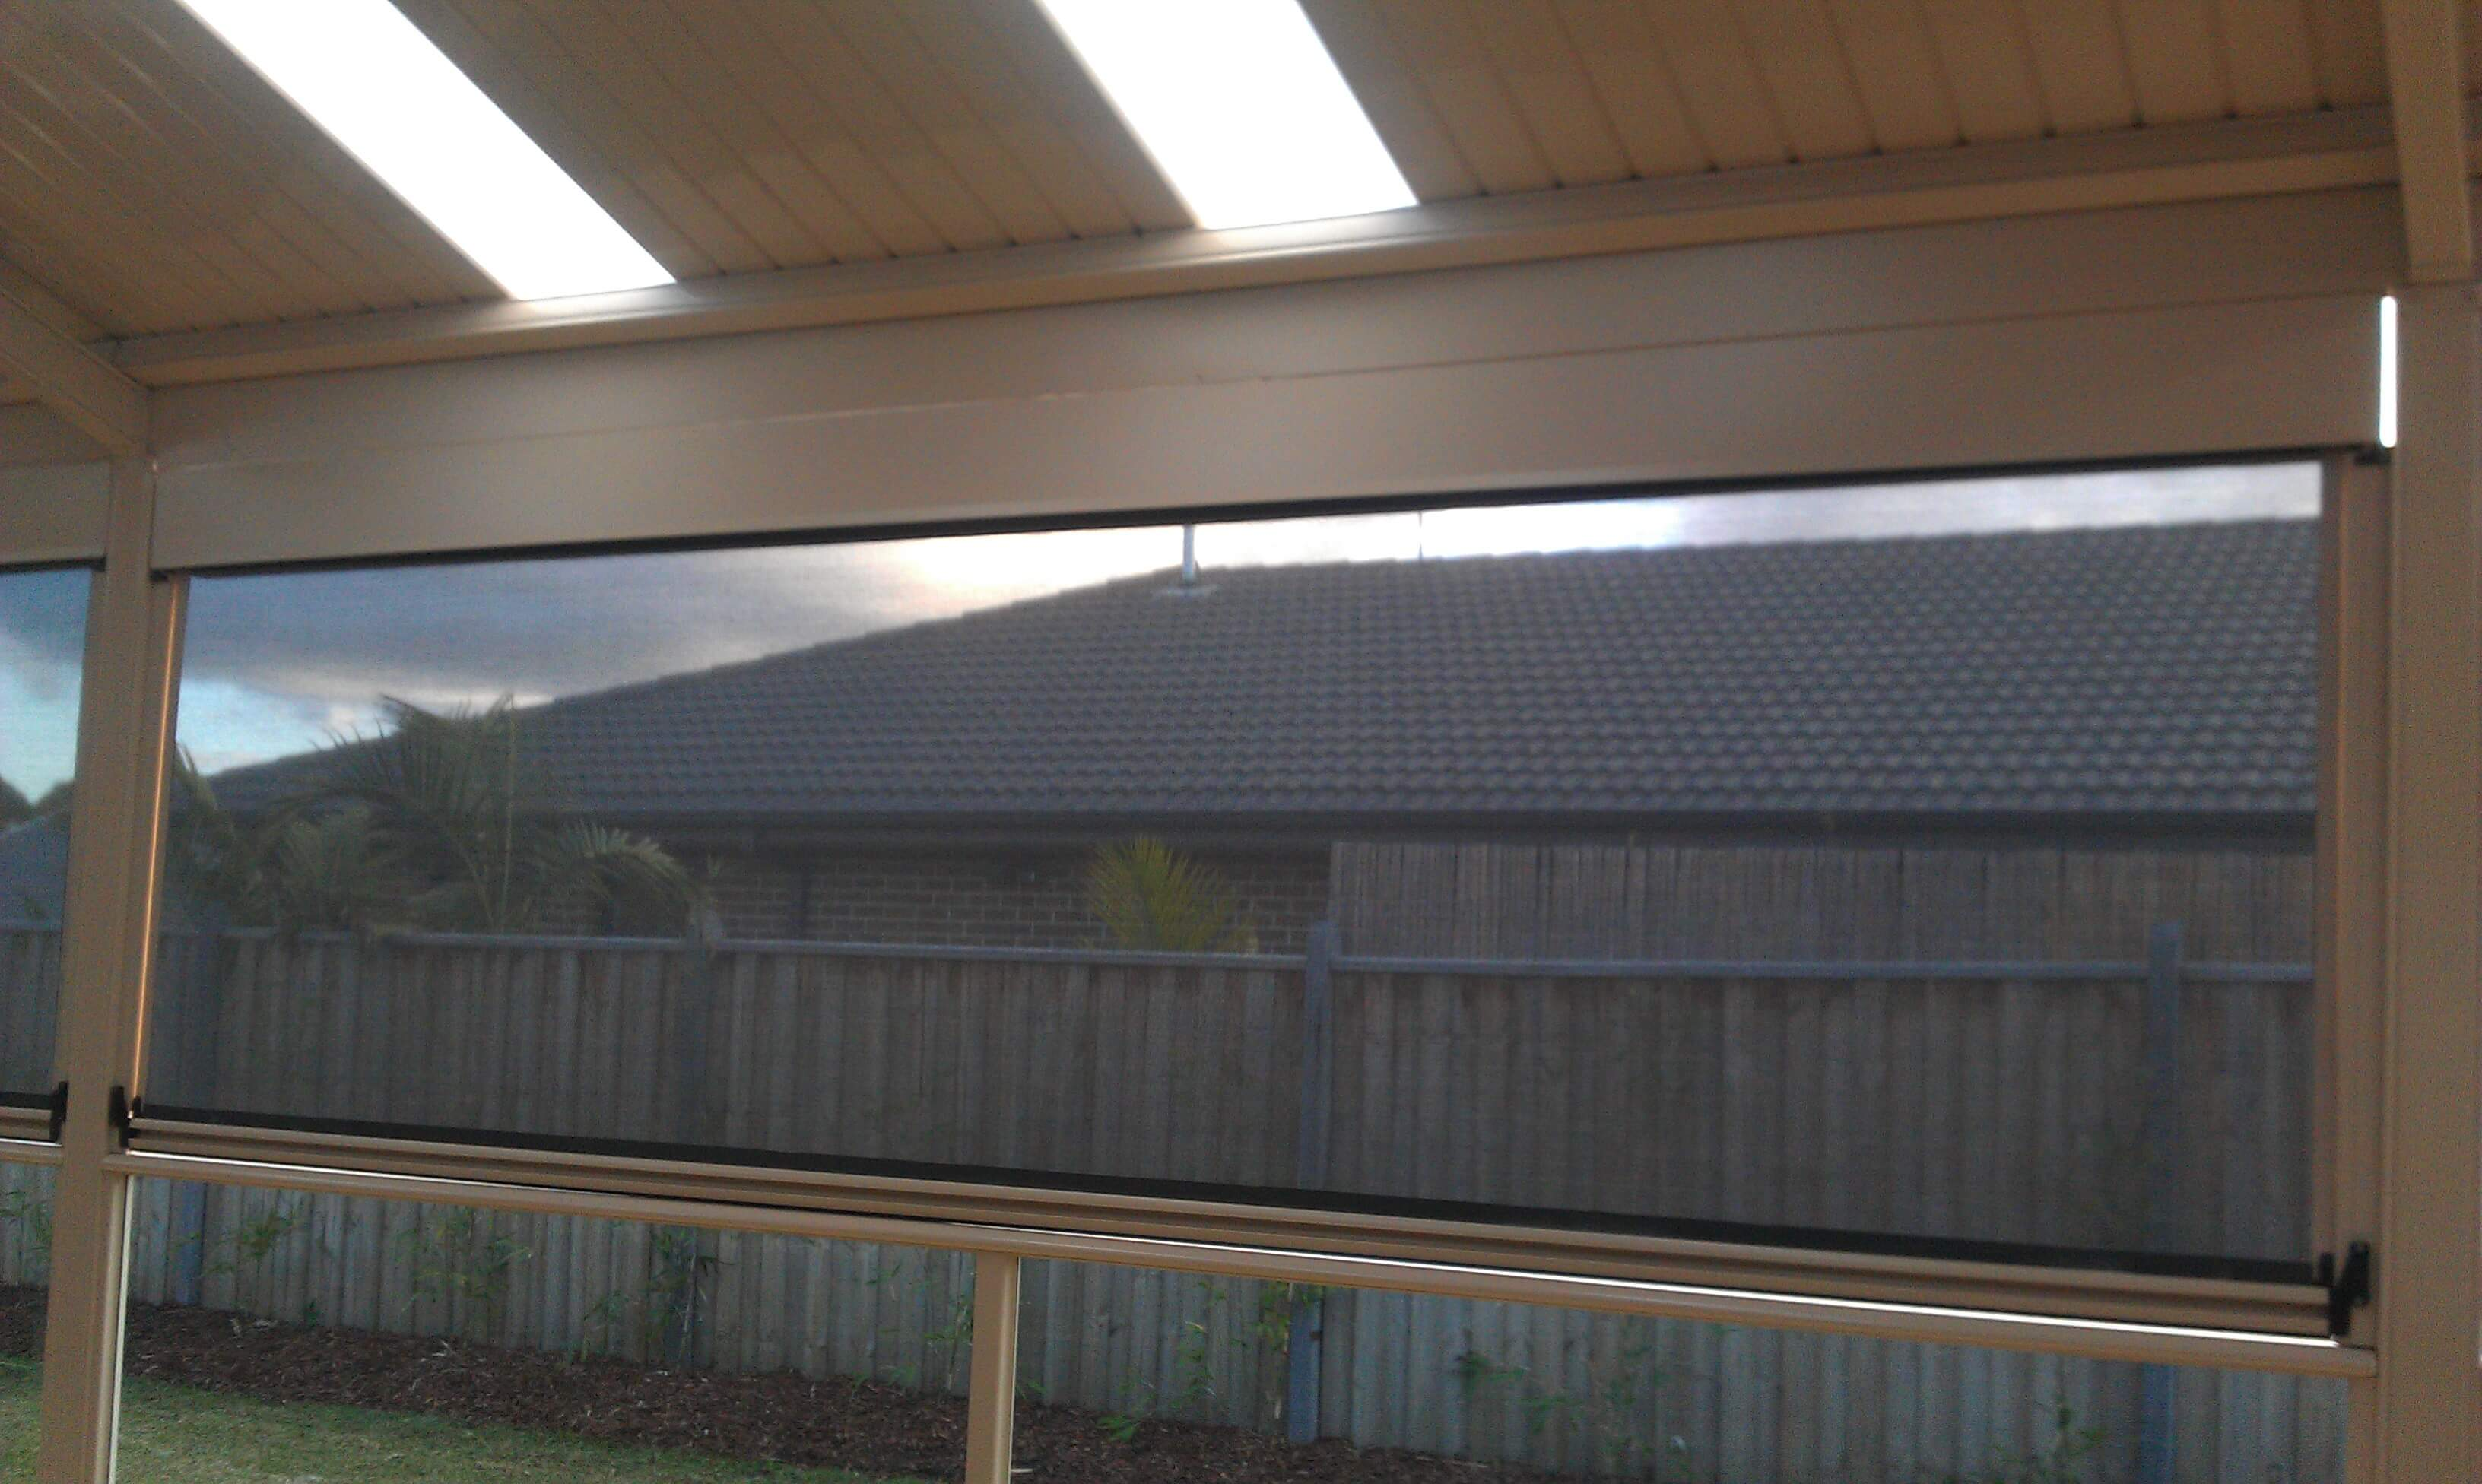 Ziptrak 174 Blinds From Euroblinds Zip Track Blinds Melbourne